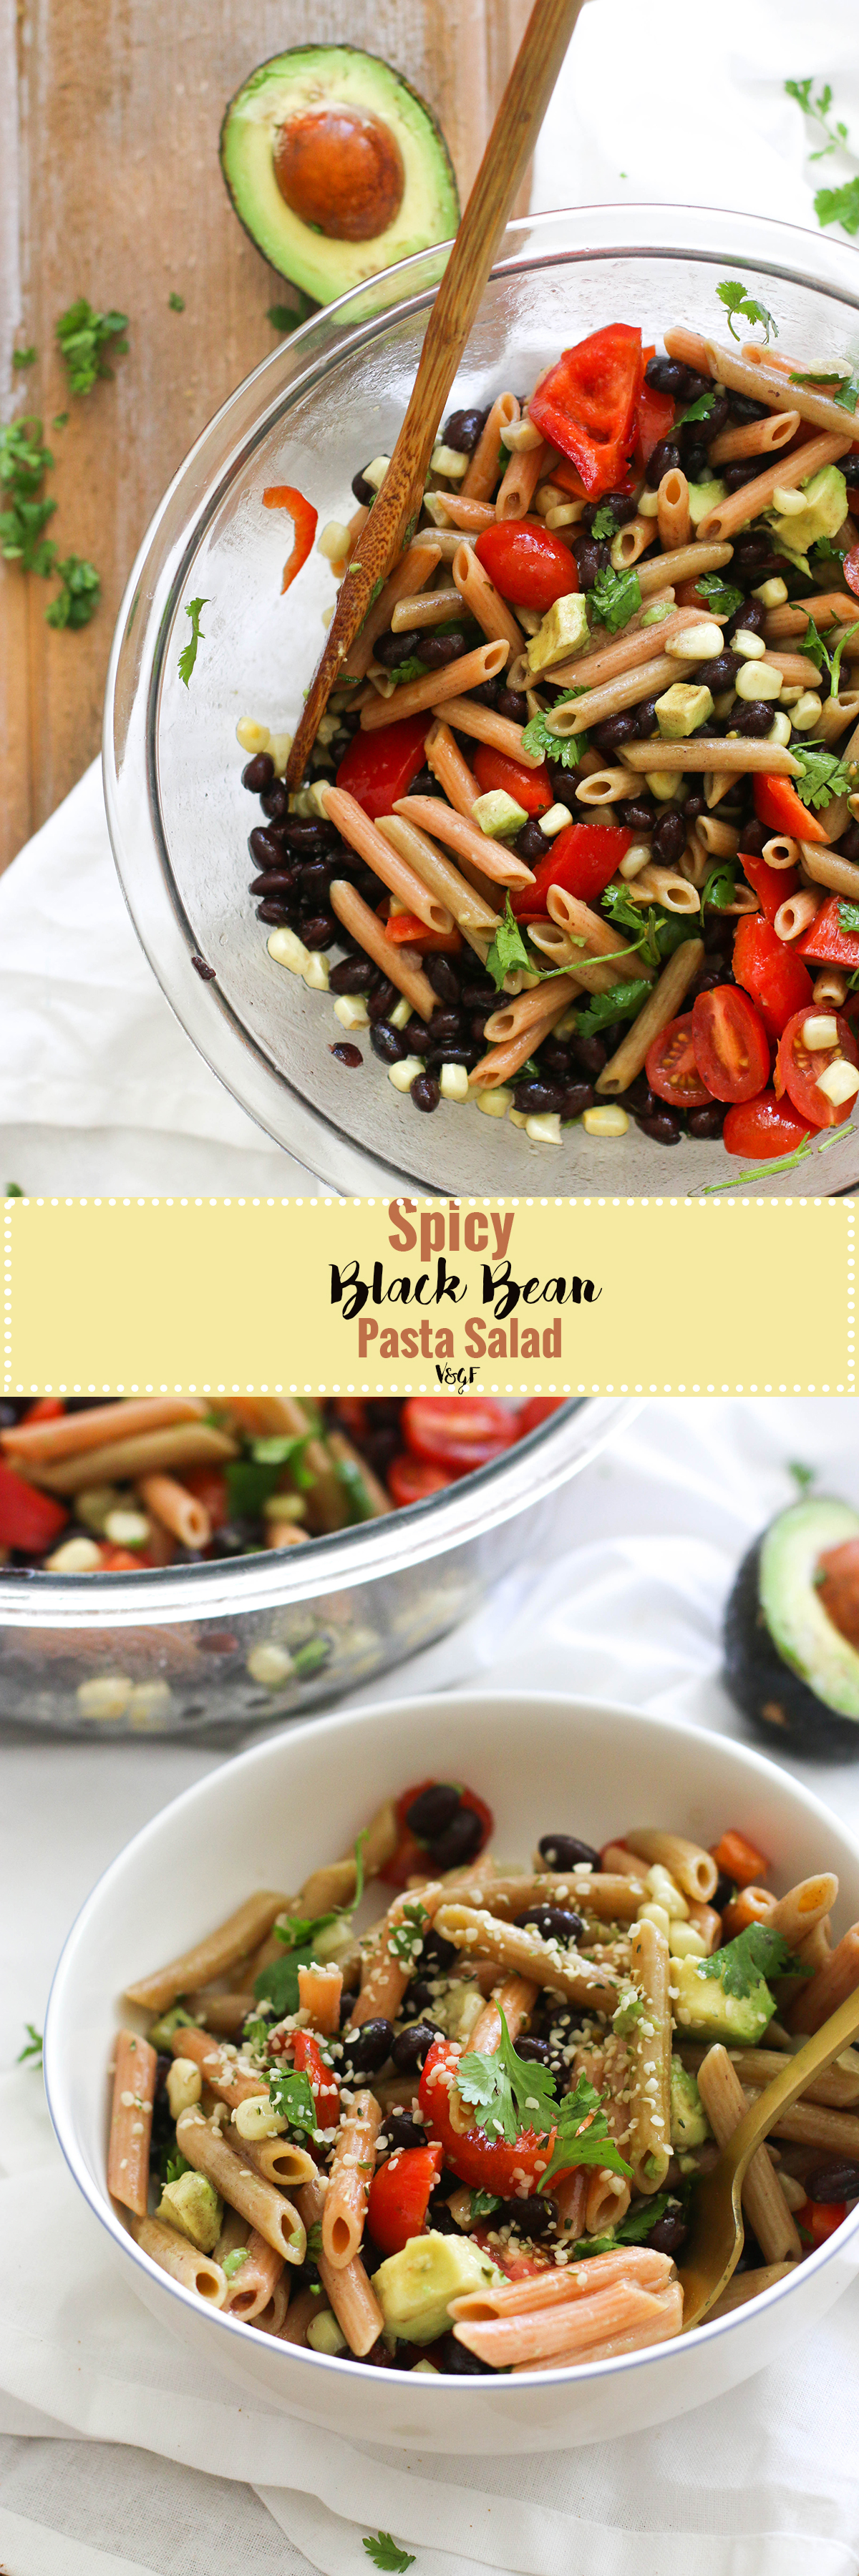 This spicy black bean pasta salad is vegan, gluten free, protein packed, and full of flavor! Made with common ingredients and incredibly flavorful, this is the perfect summer side dish.